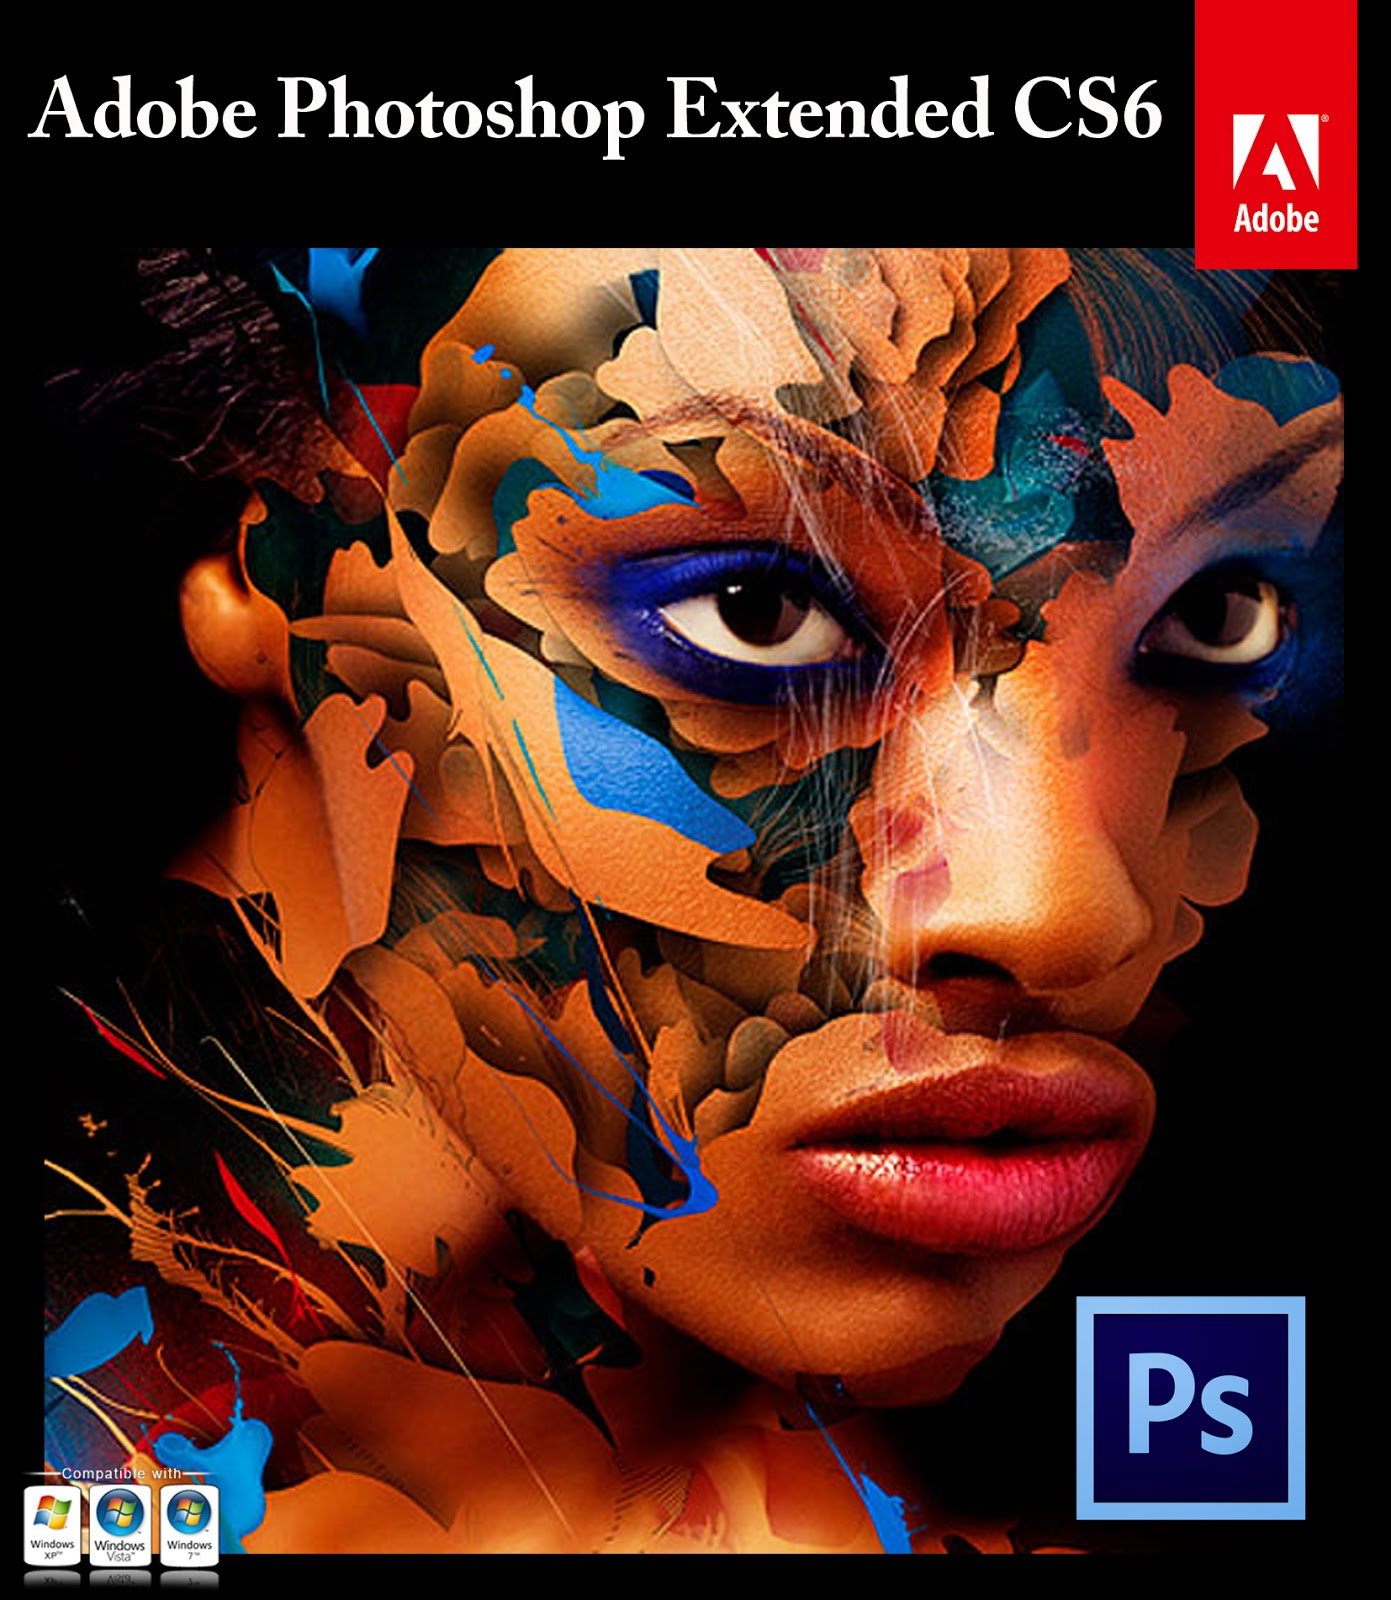 adobe photoshop cs6 free download full version for windows 7 pc